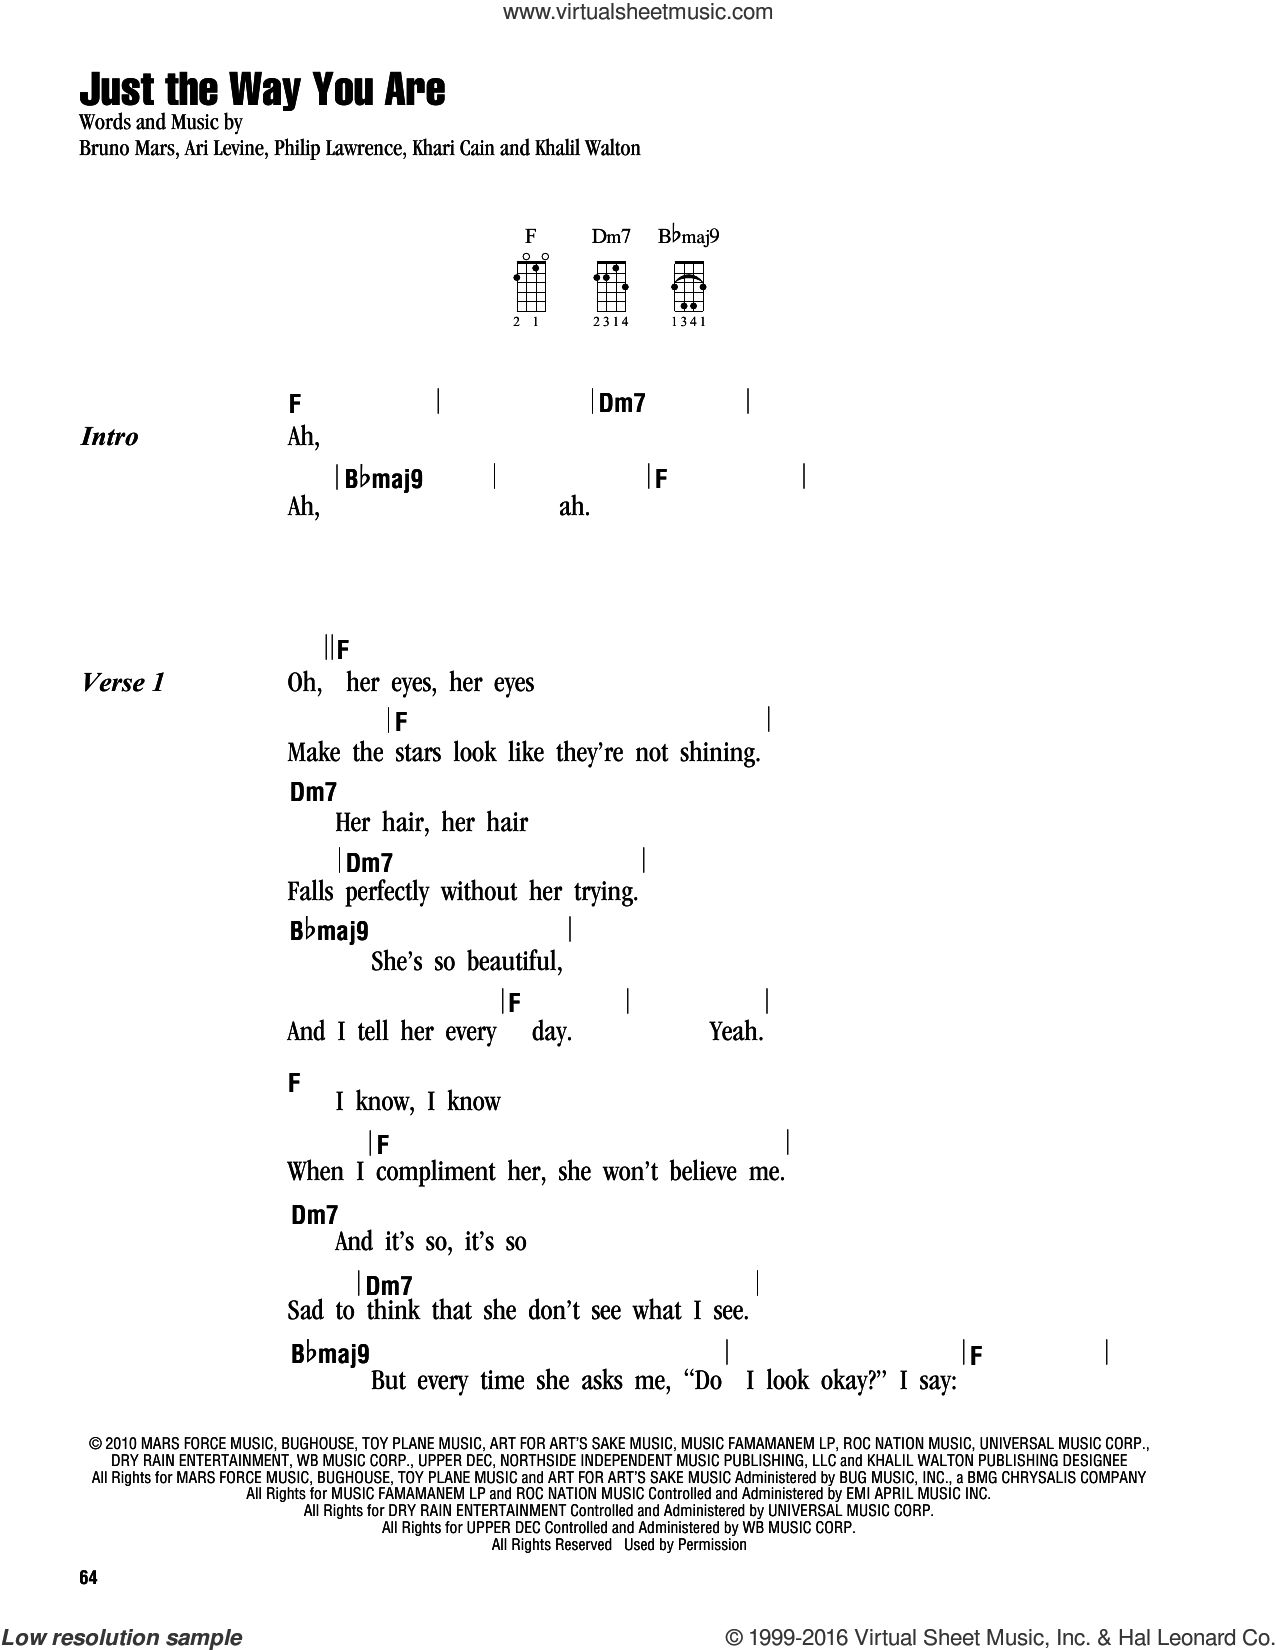 Just The Way You Are sheet music for ukulele (chords) by Bruno Mars, Ari Levine, Khalil Walton, Khari Cain and Philip Lawrence, intermediate ukulele (chords). Score Image Preview.